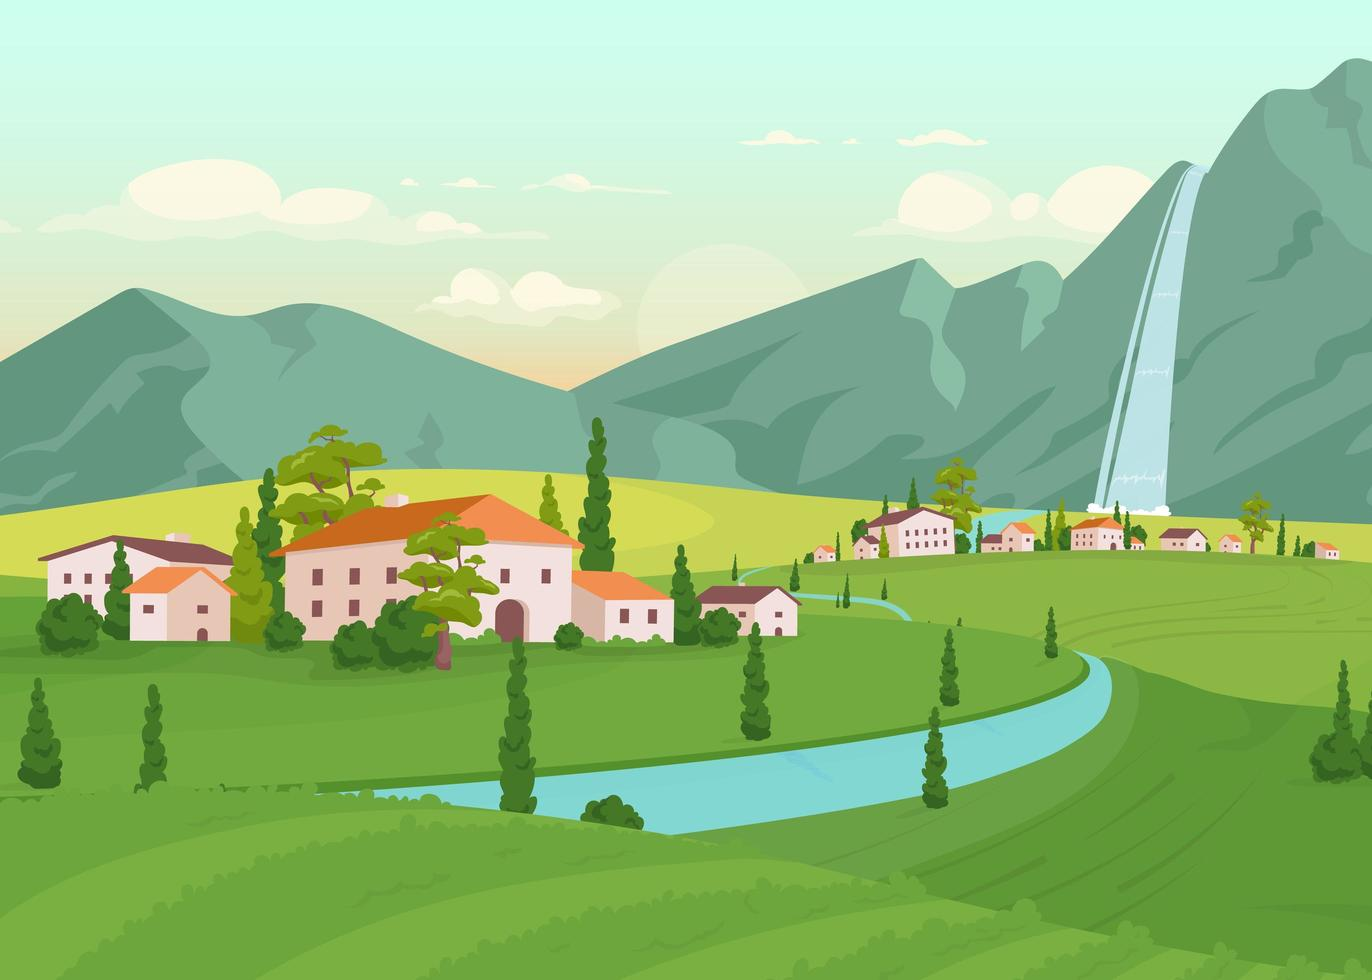 Tuscany scenery flat color vector illustration